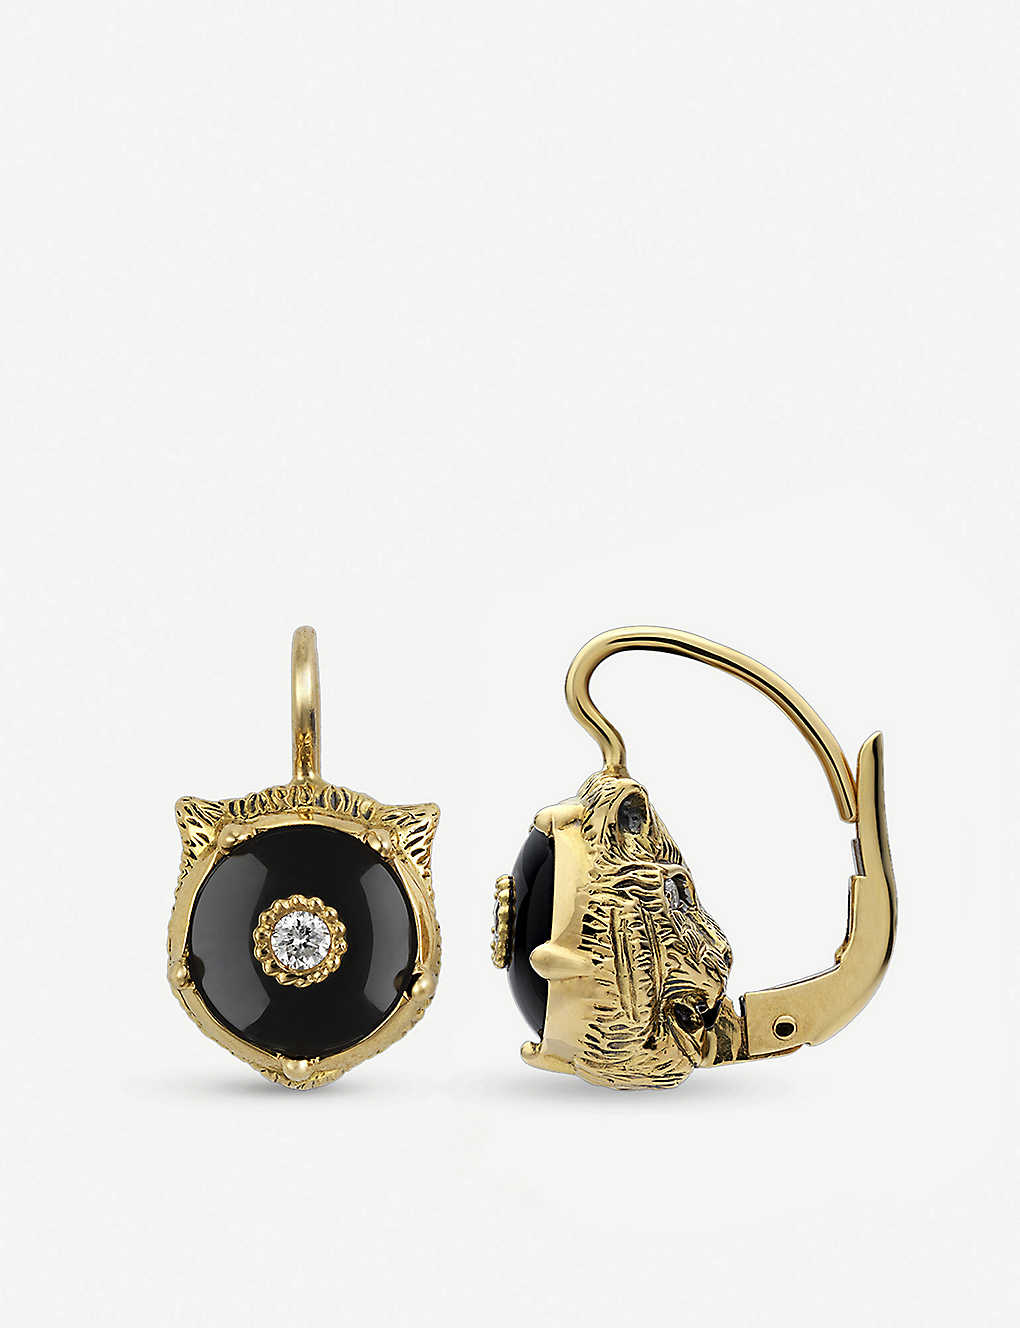 GUCCI: Le Marché des Merveilles 18ct yellow-gold, black onyx and diamond earrings